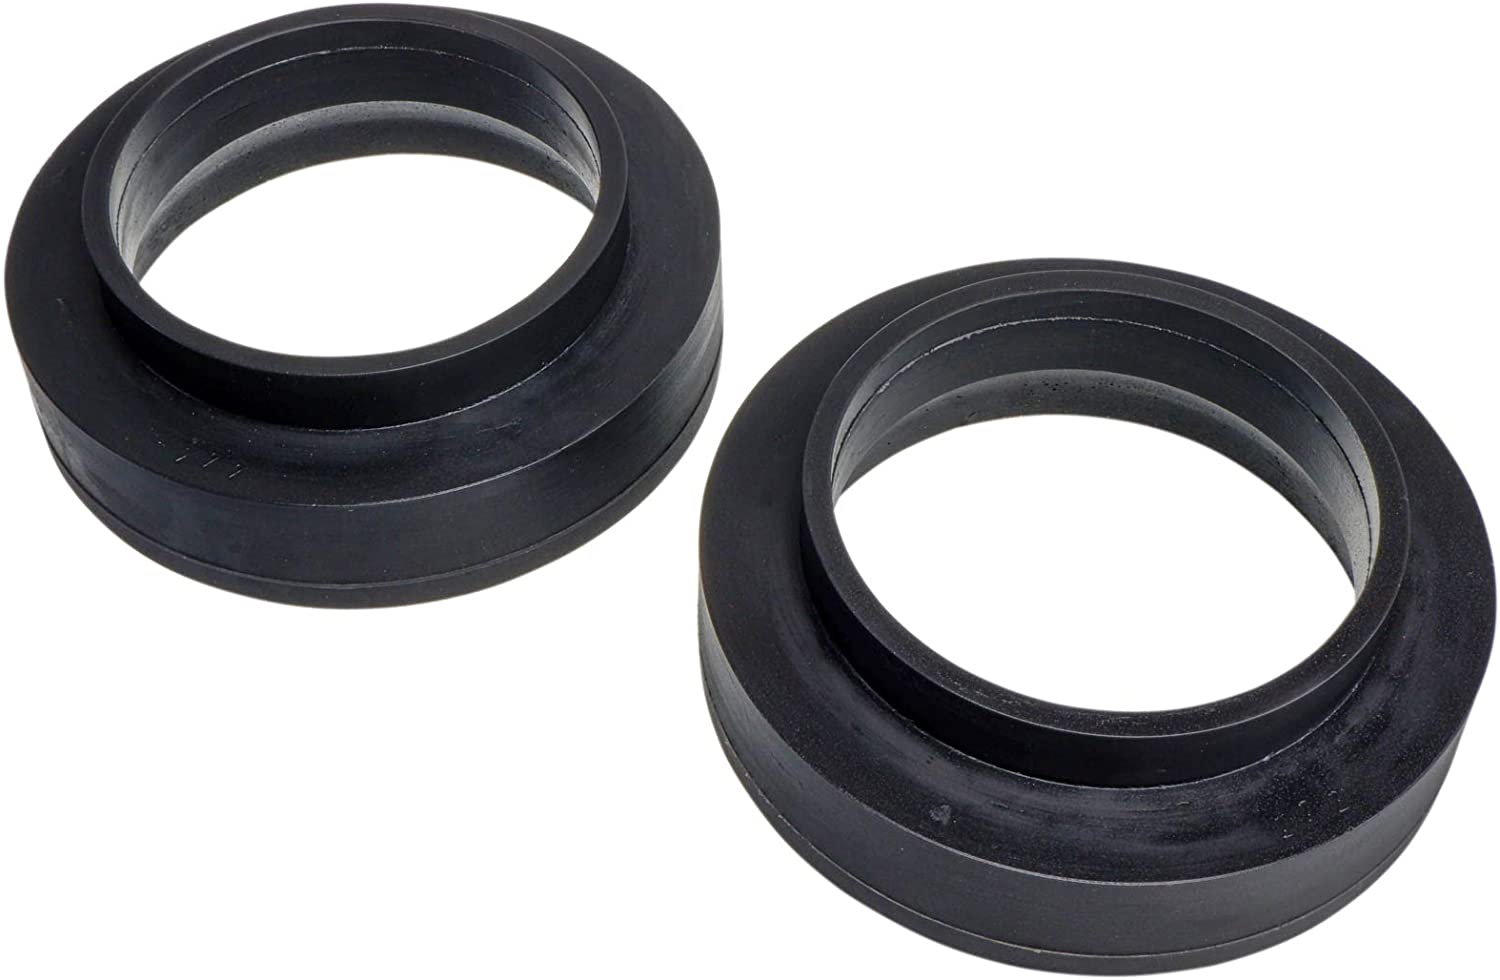 Rear coil spacers 50mm store for Lexus Limited price LX570 Lift LX450 LX460 LX470